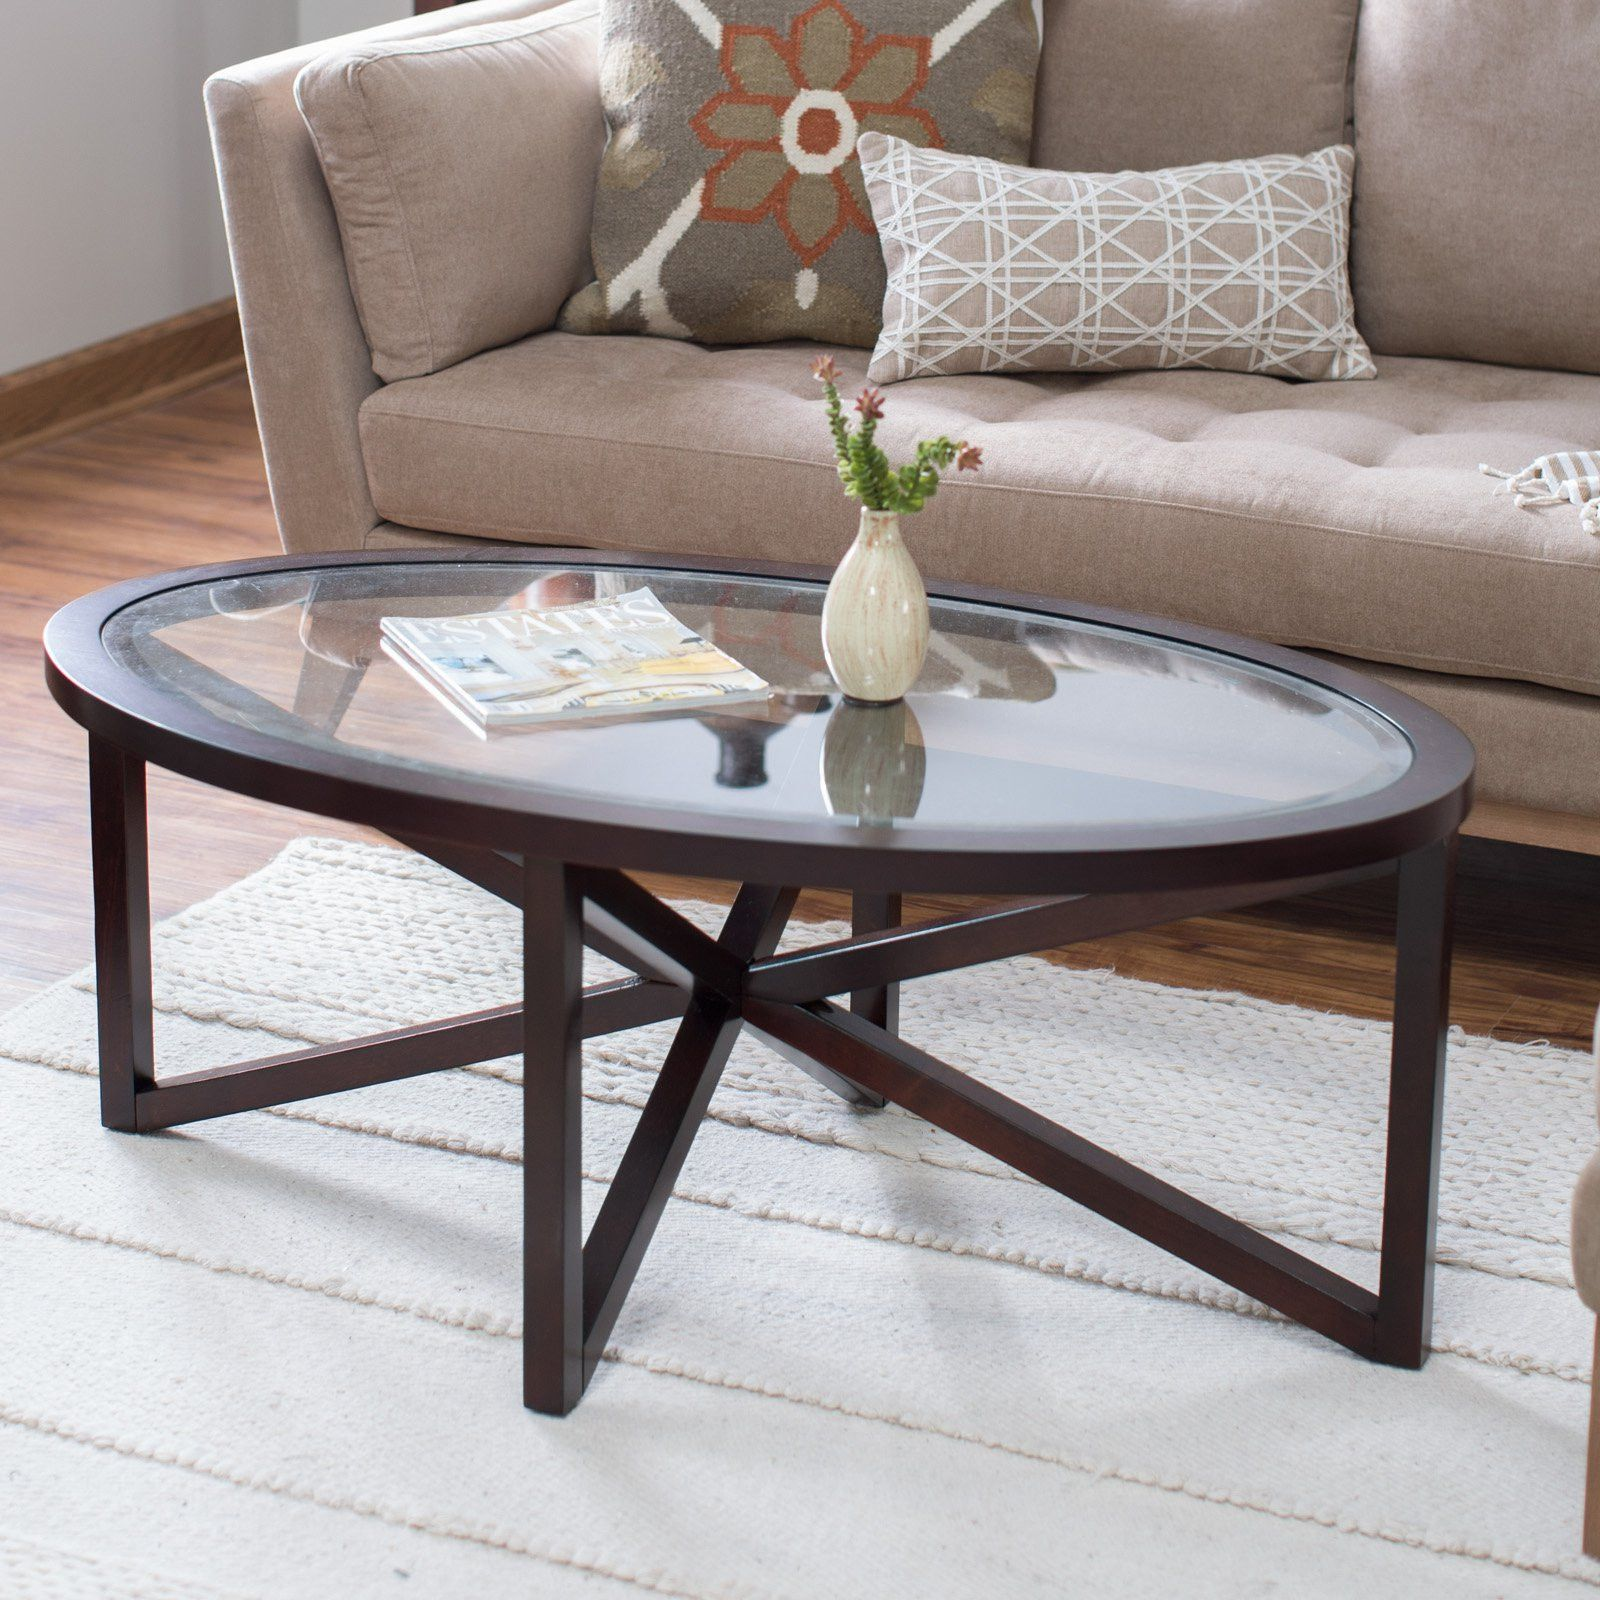 Webster Oval Coffee Table Coffee Table Oval Coffee Tables Contemporary Coffee Table [ 1600 x 1600 Pixel ]